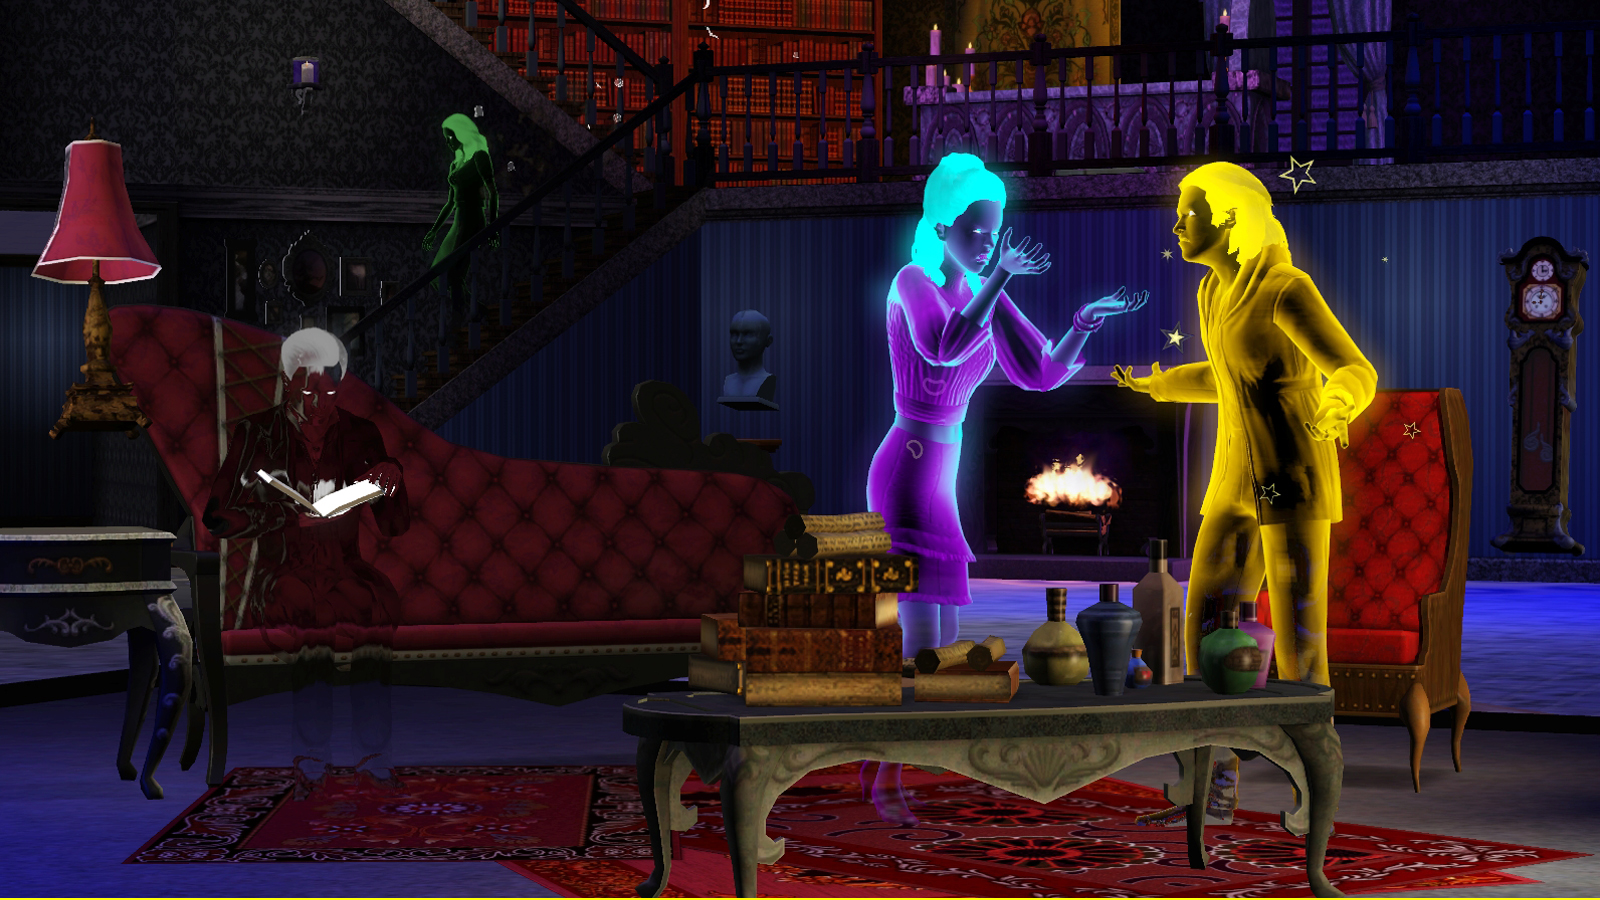 sims 3 dating ghost Okay, so i've heard you can have ghost babies on the sims 3 i had my guy (trevon), take a tombstone of a girl (i used to play her but she died ) his age into his inventory.